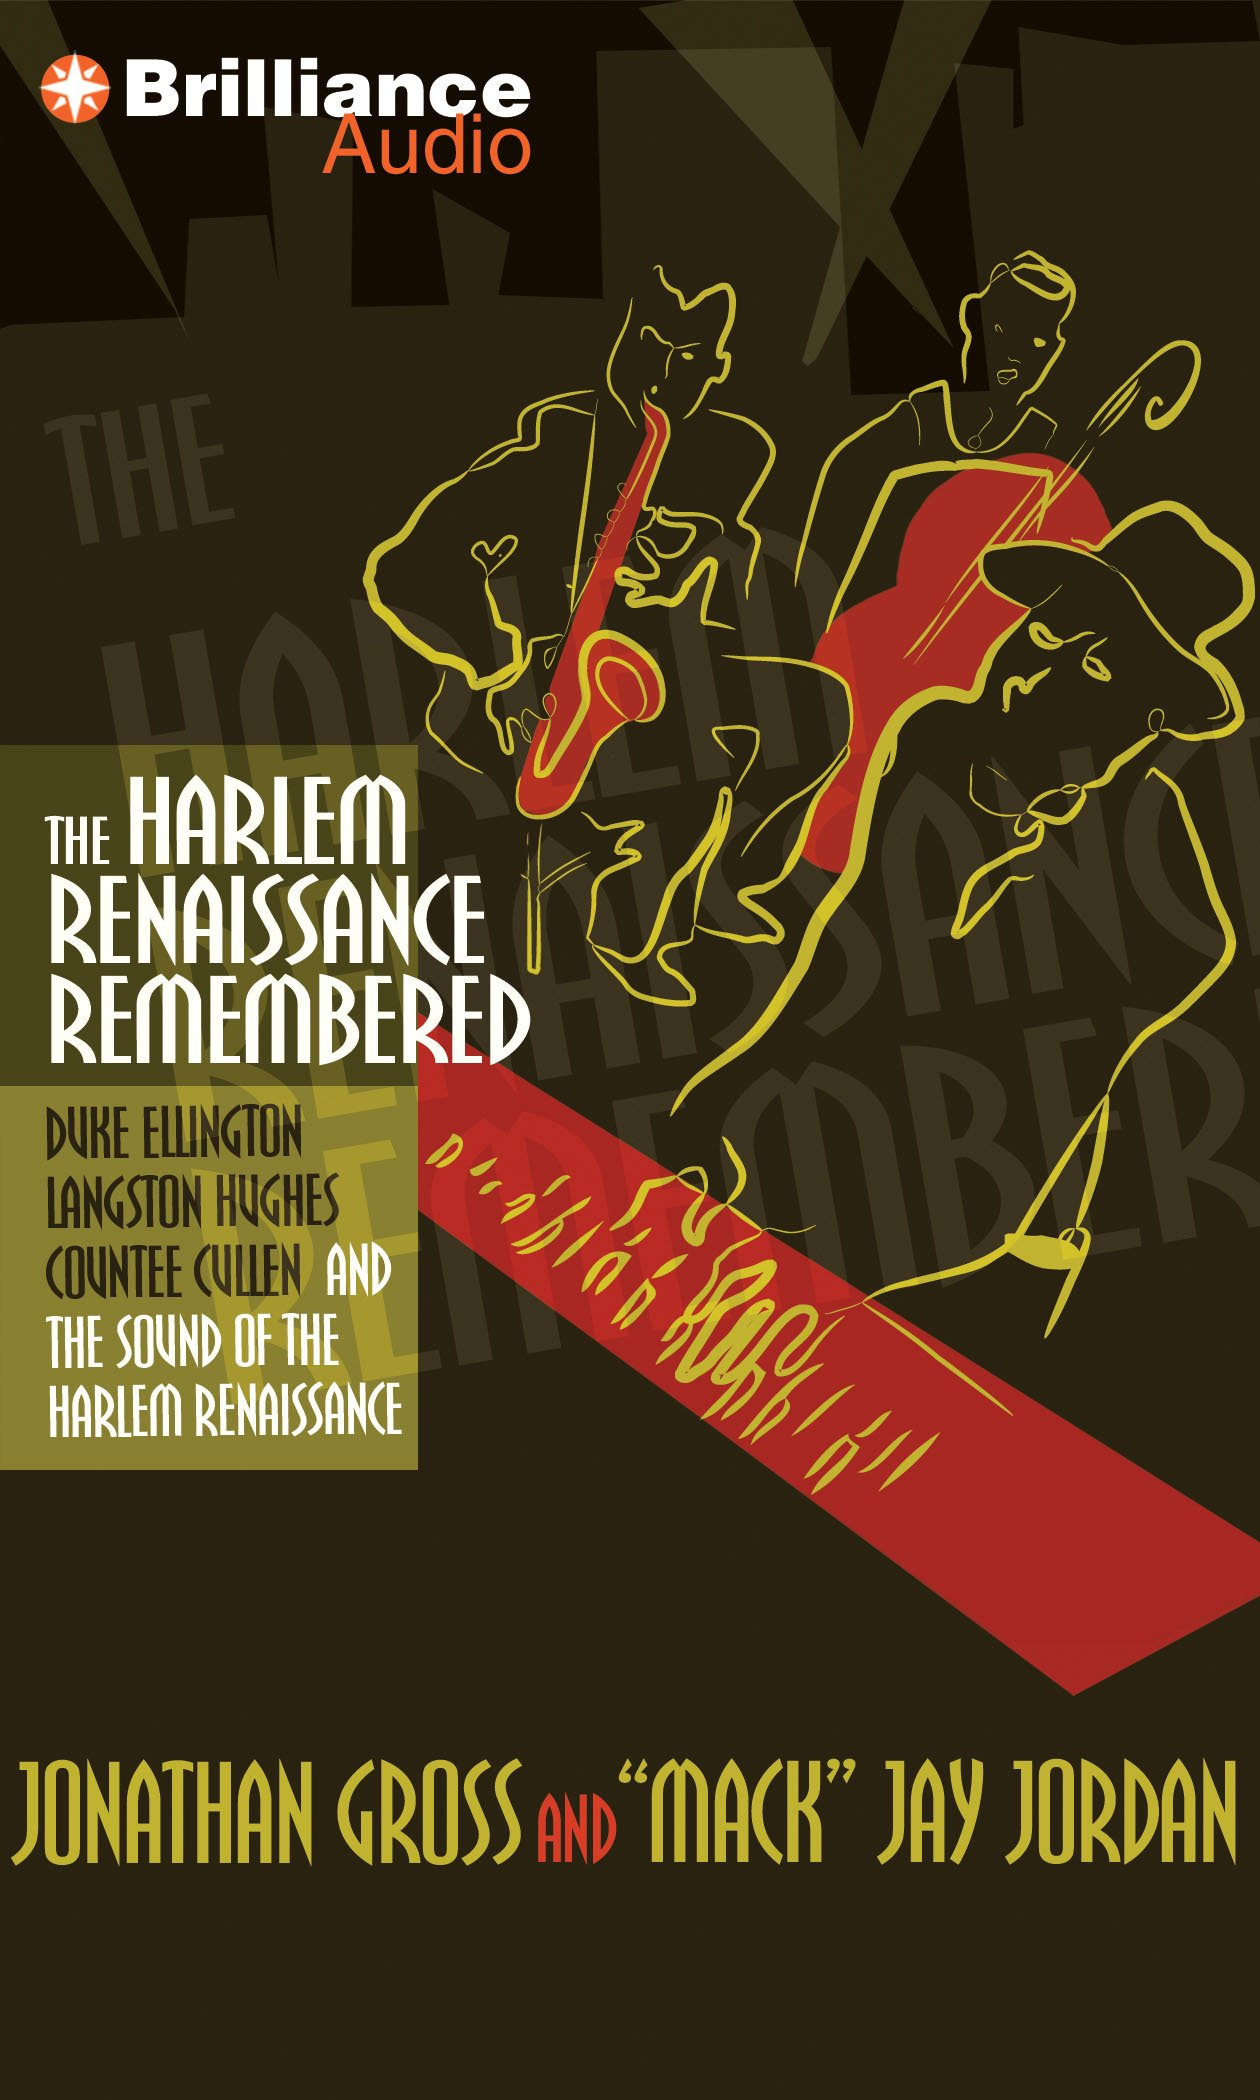 com the harlem renaissance remembered duke ellington com the harlem renaissance remembered duke ellington langston hughes countee cullen and the sound of the harlem renaissance 9781441808837